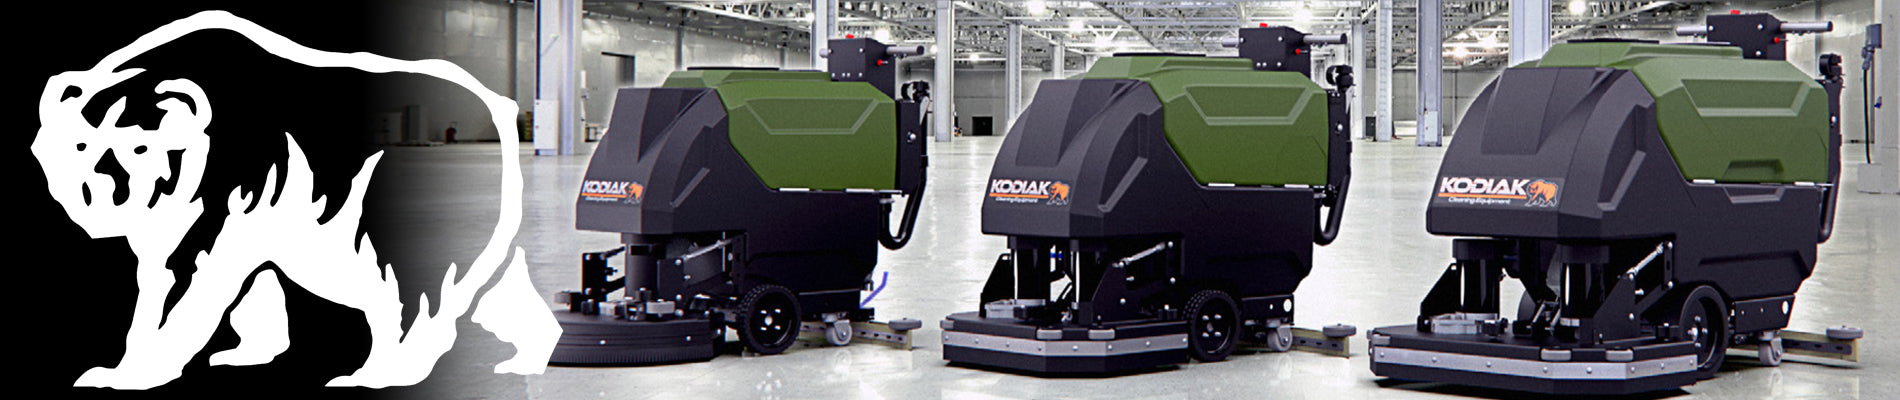 Kodiak Floor Cleaning Equipment